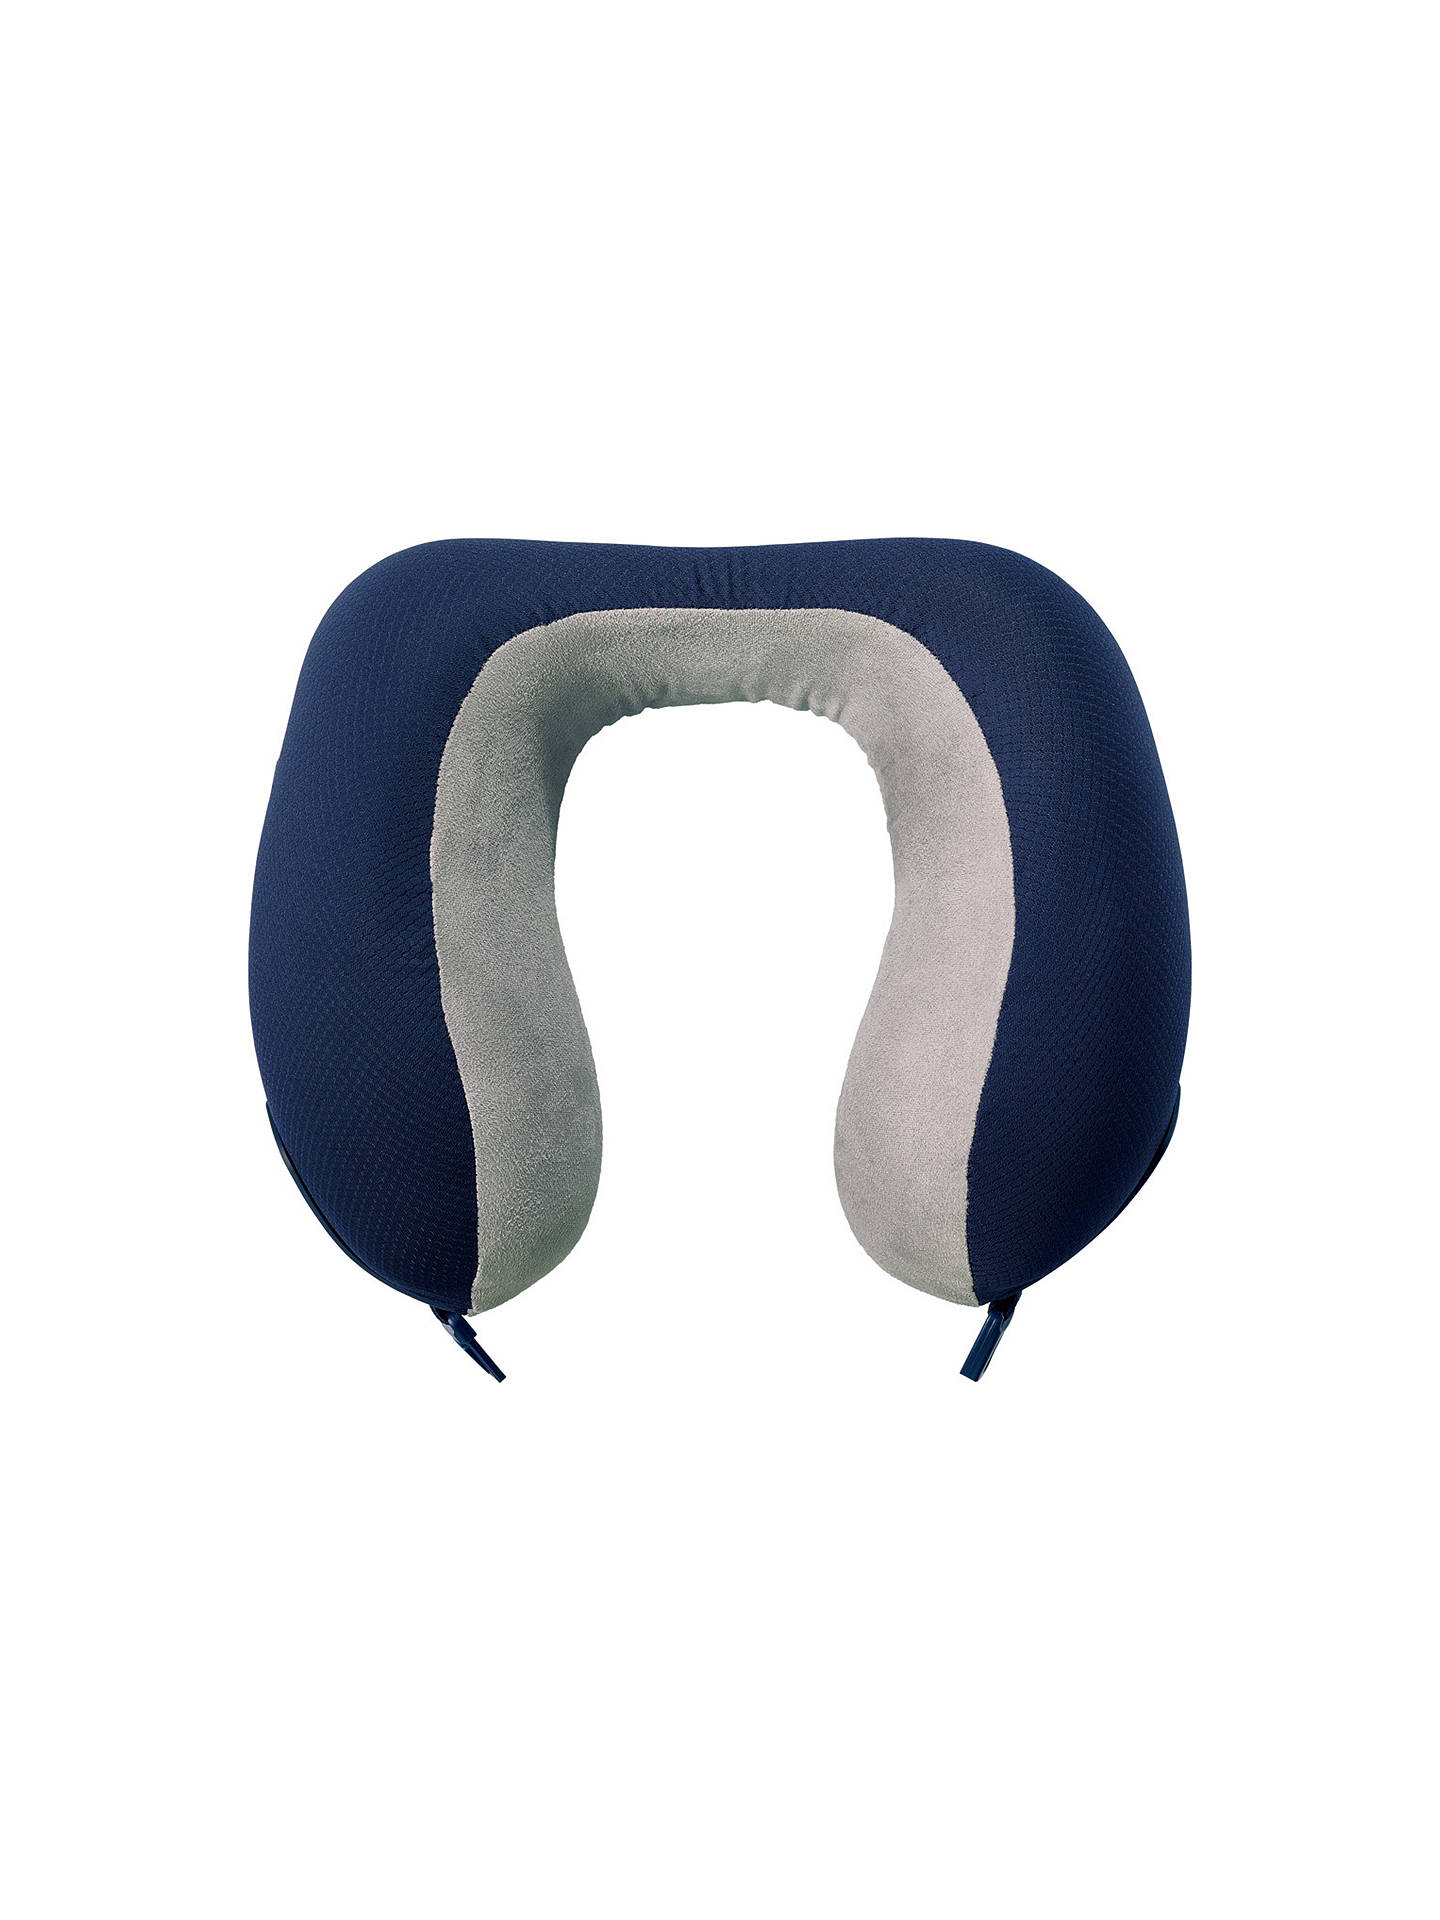 Buy Go Travel 2 Memory Dreamer Pillow, Grey Online at johnlewis.com